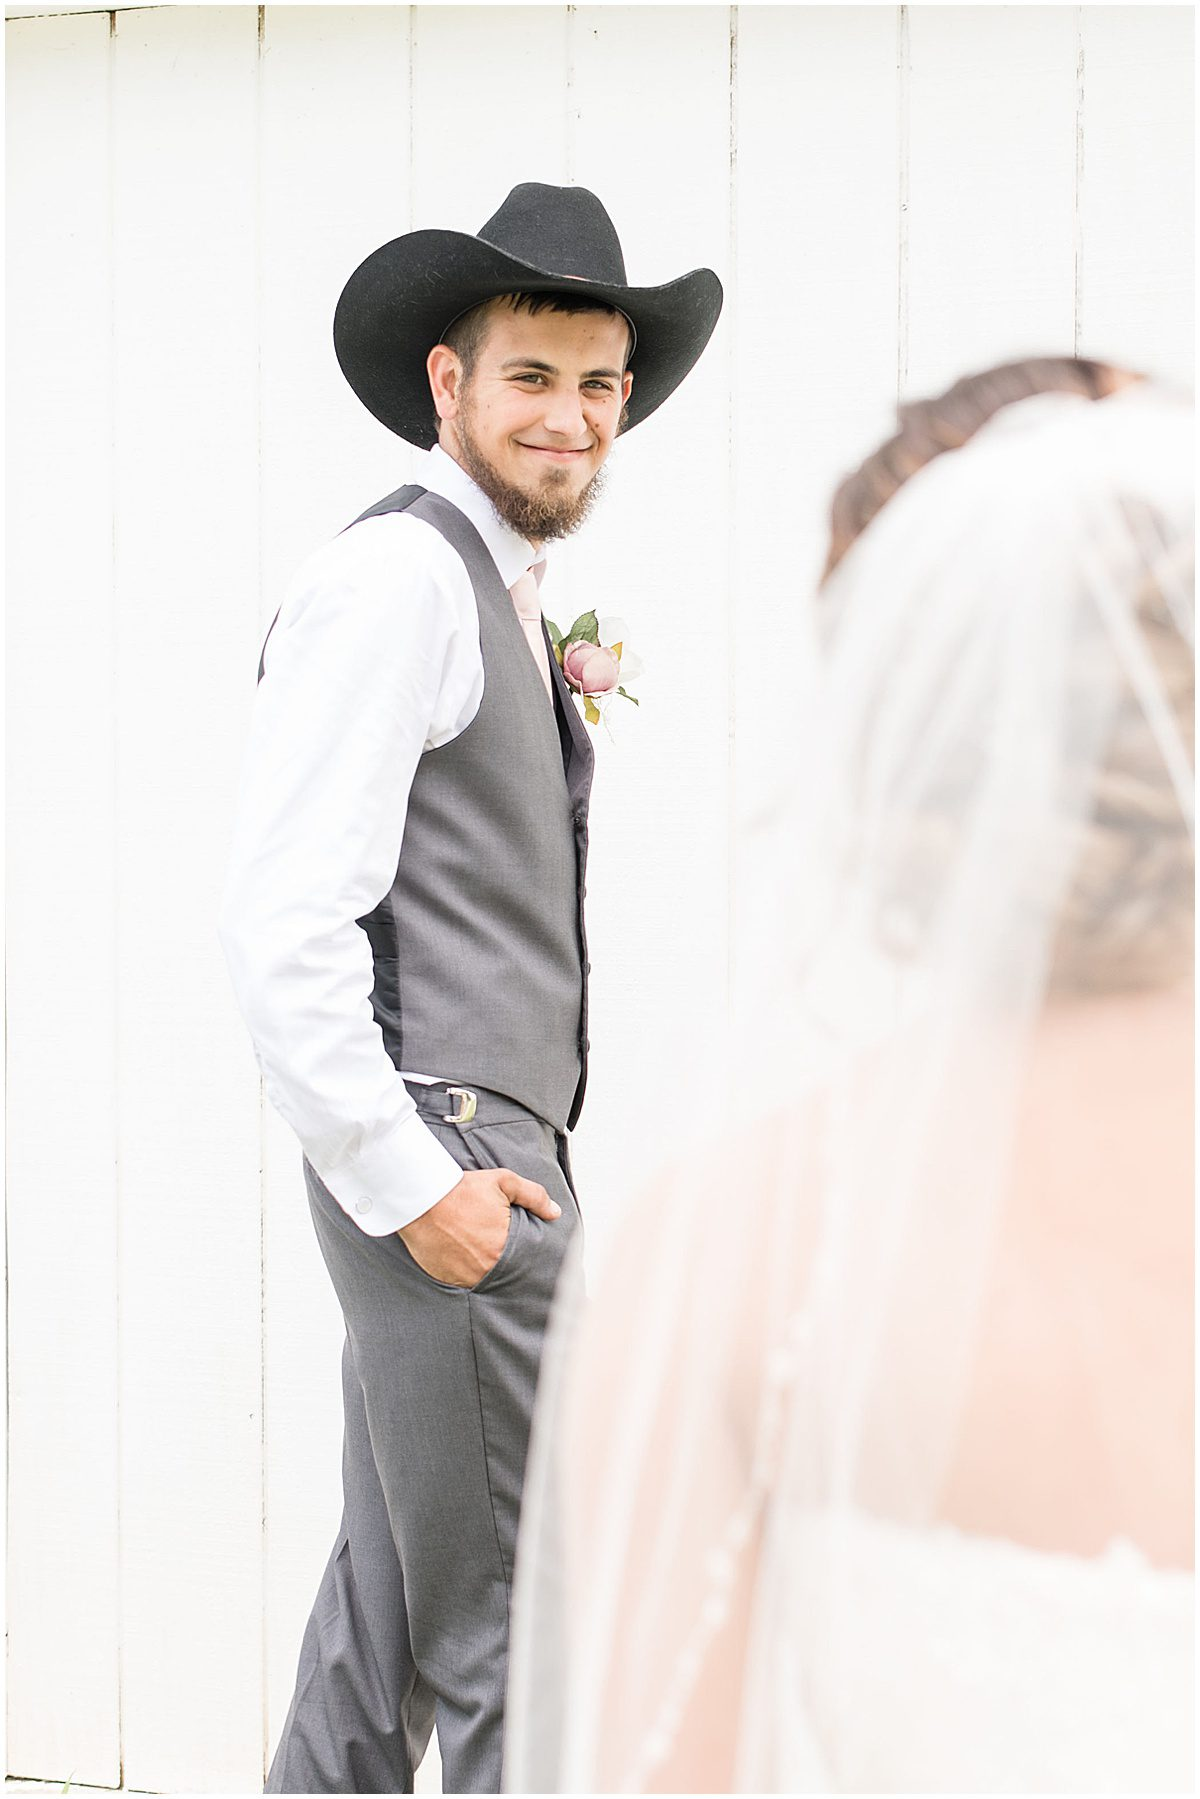 First look at Wea Creek Orchard wedding in Lafayette, Indiana